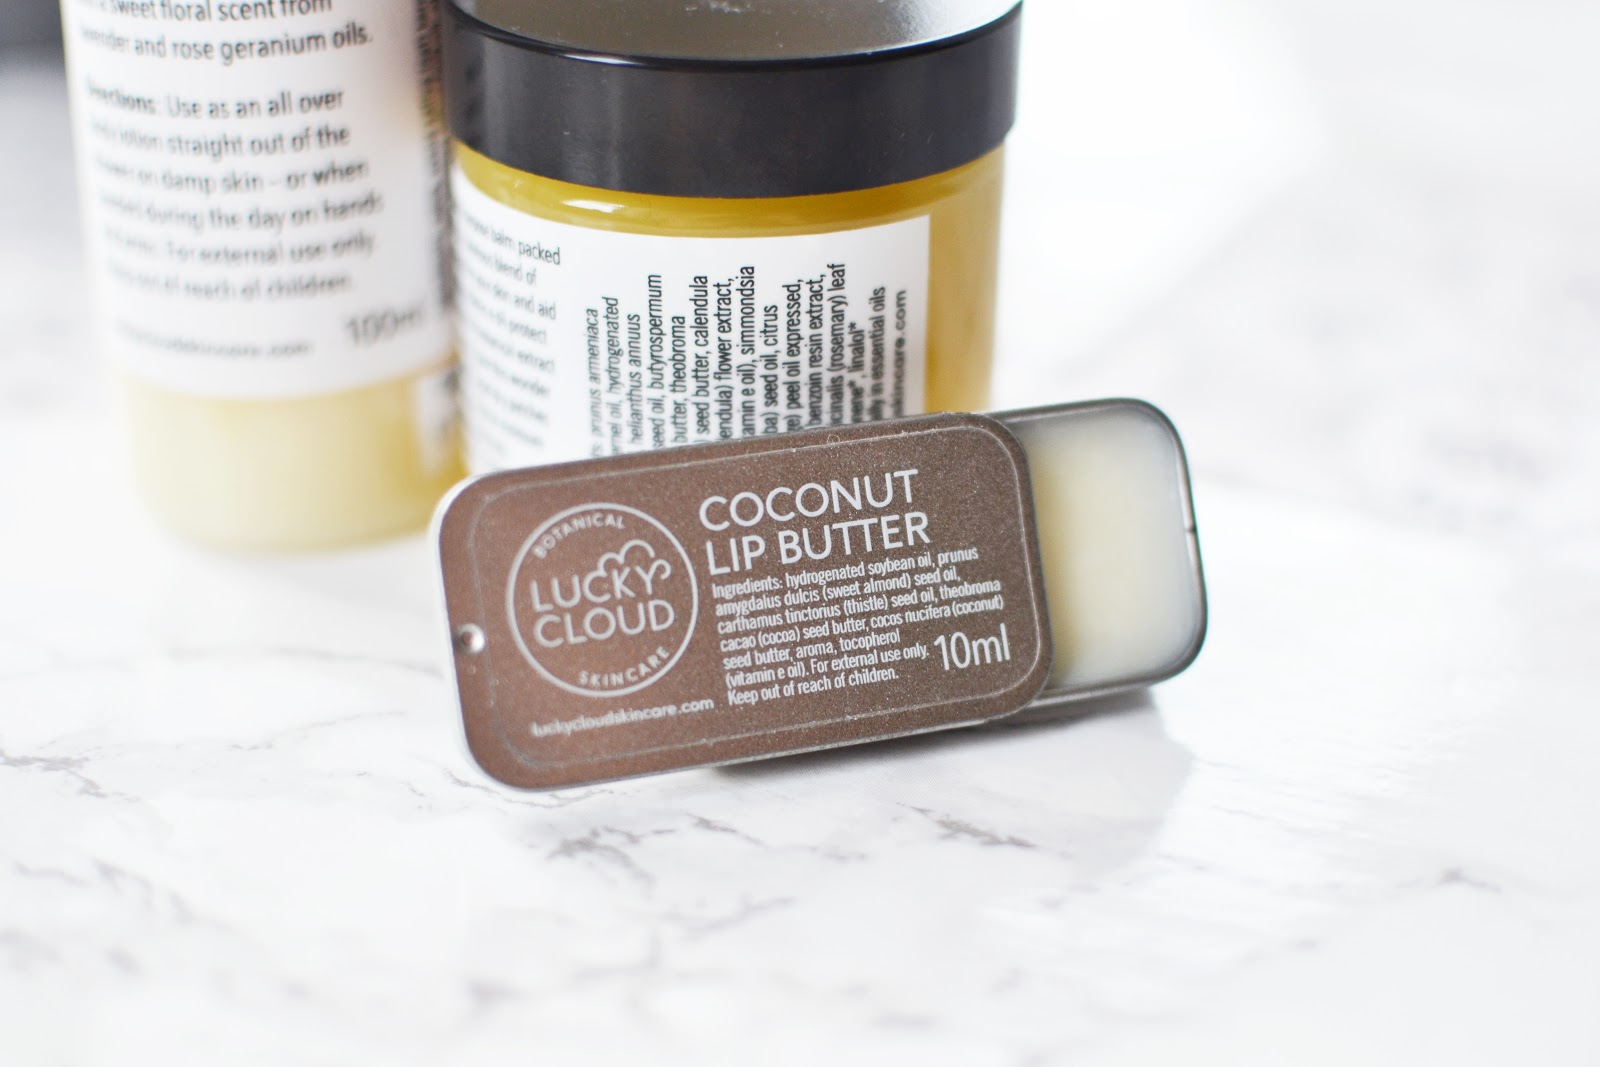 Lucky Cloud Coconut Lip Butter